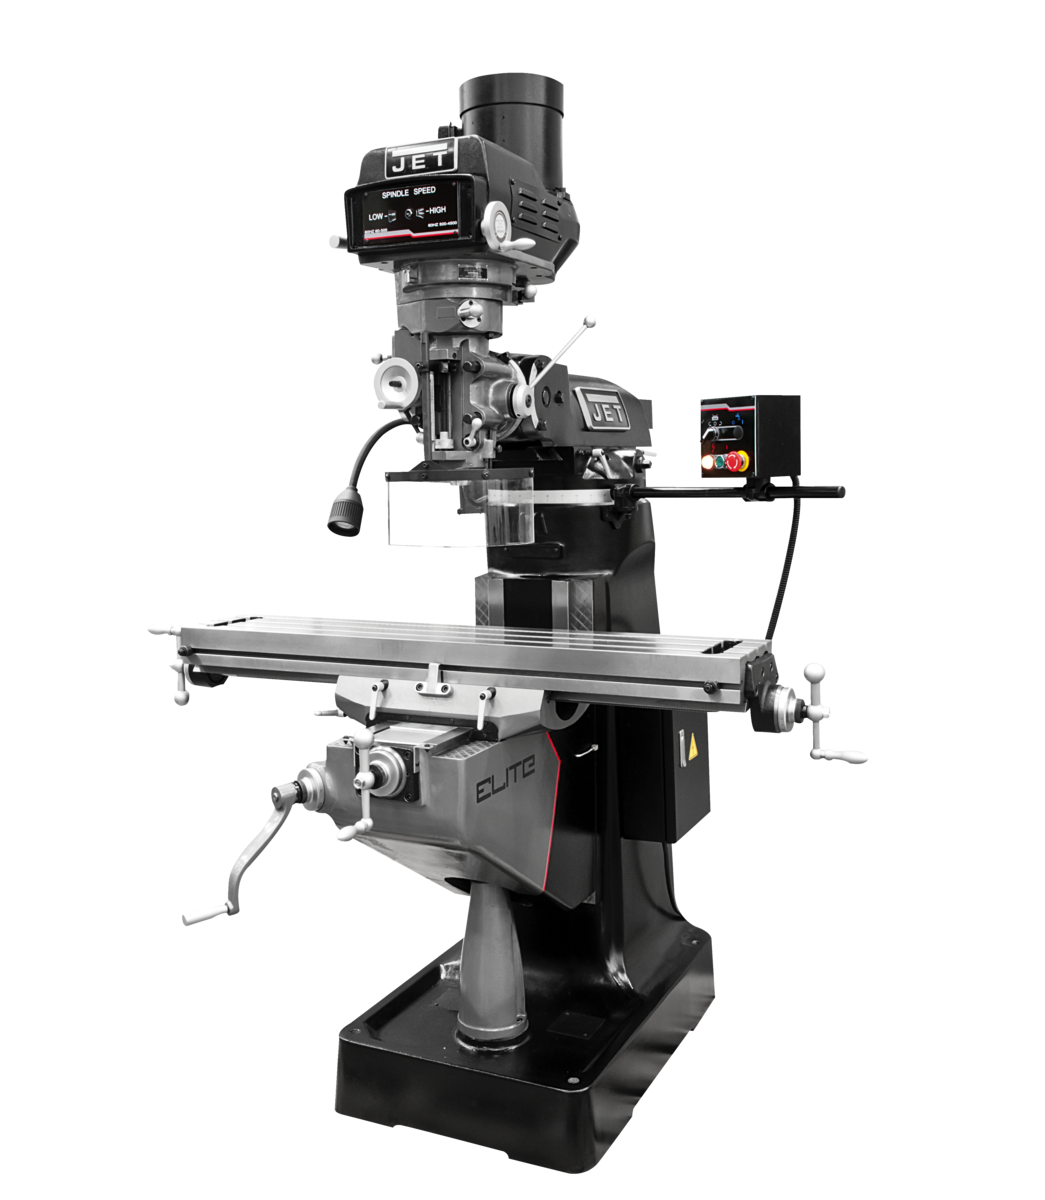 ETM-949 Mill with 3-Axis Newall DP700 (Knee) DRO and Servo X-Axis Powerfeed